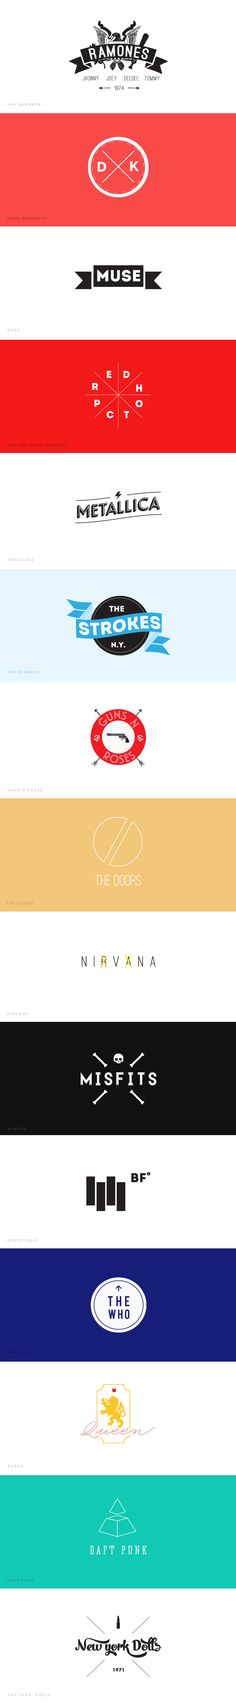 Rock Bands Logos Hipster Design http://www.behance.net/gallery/Bands-Hipsterized/10647349 ¡Hipsterized!